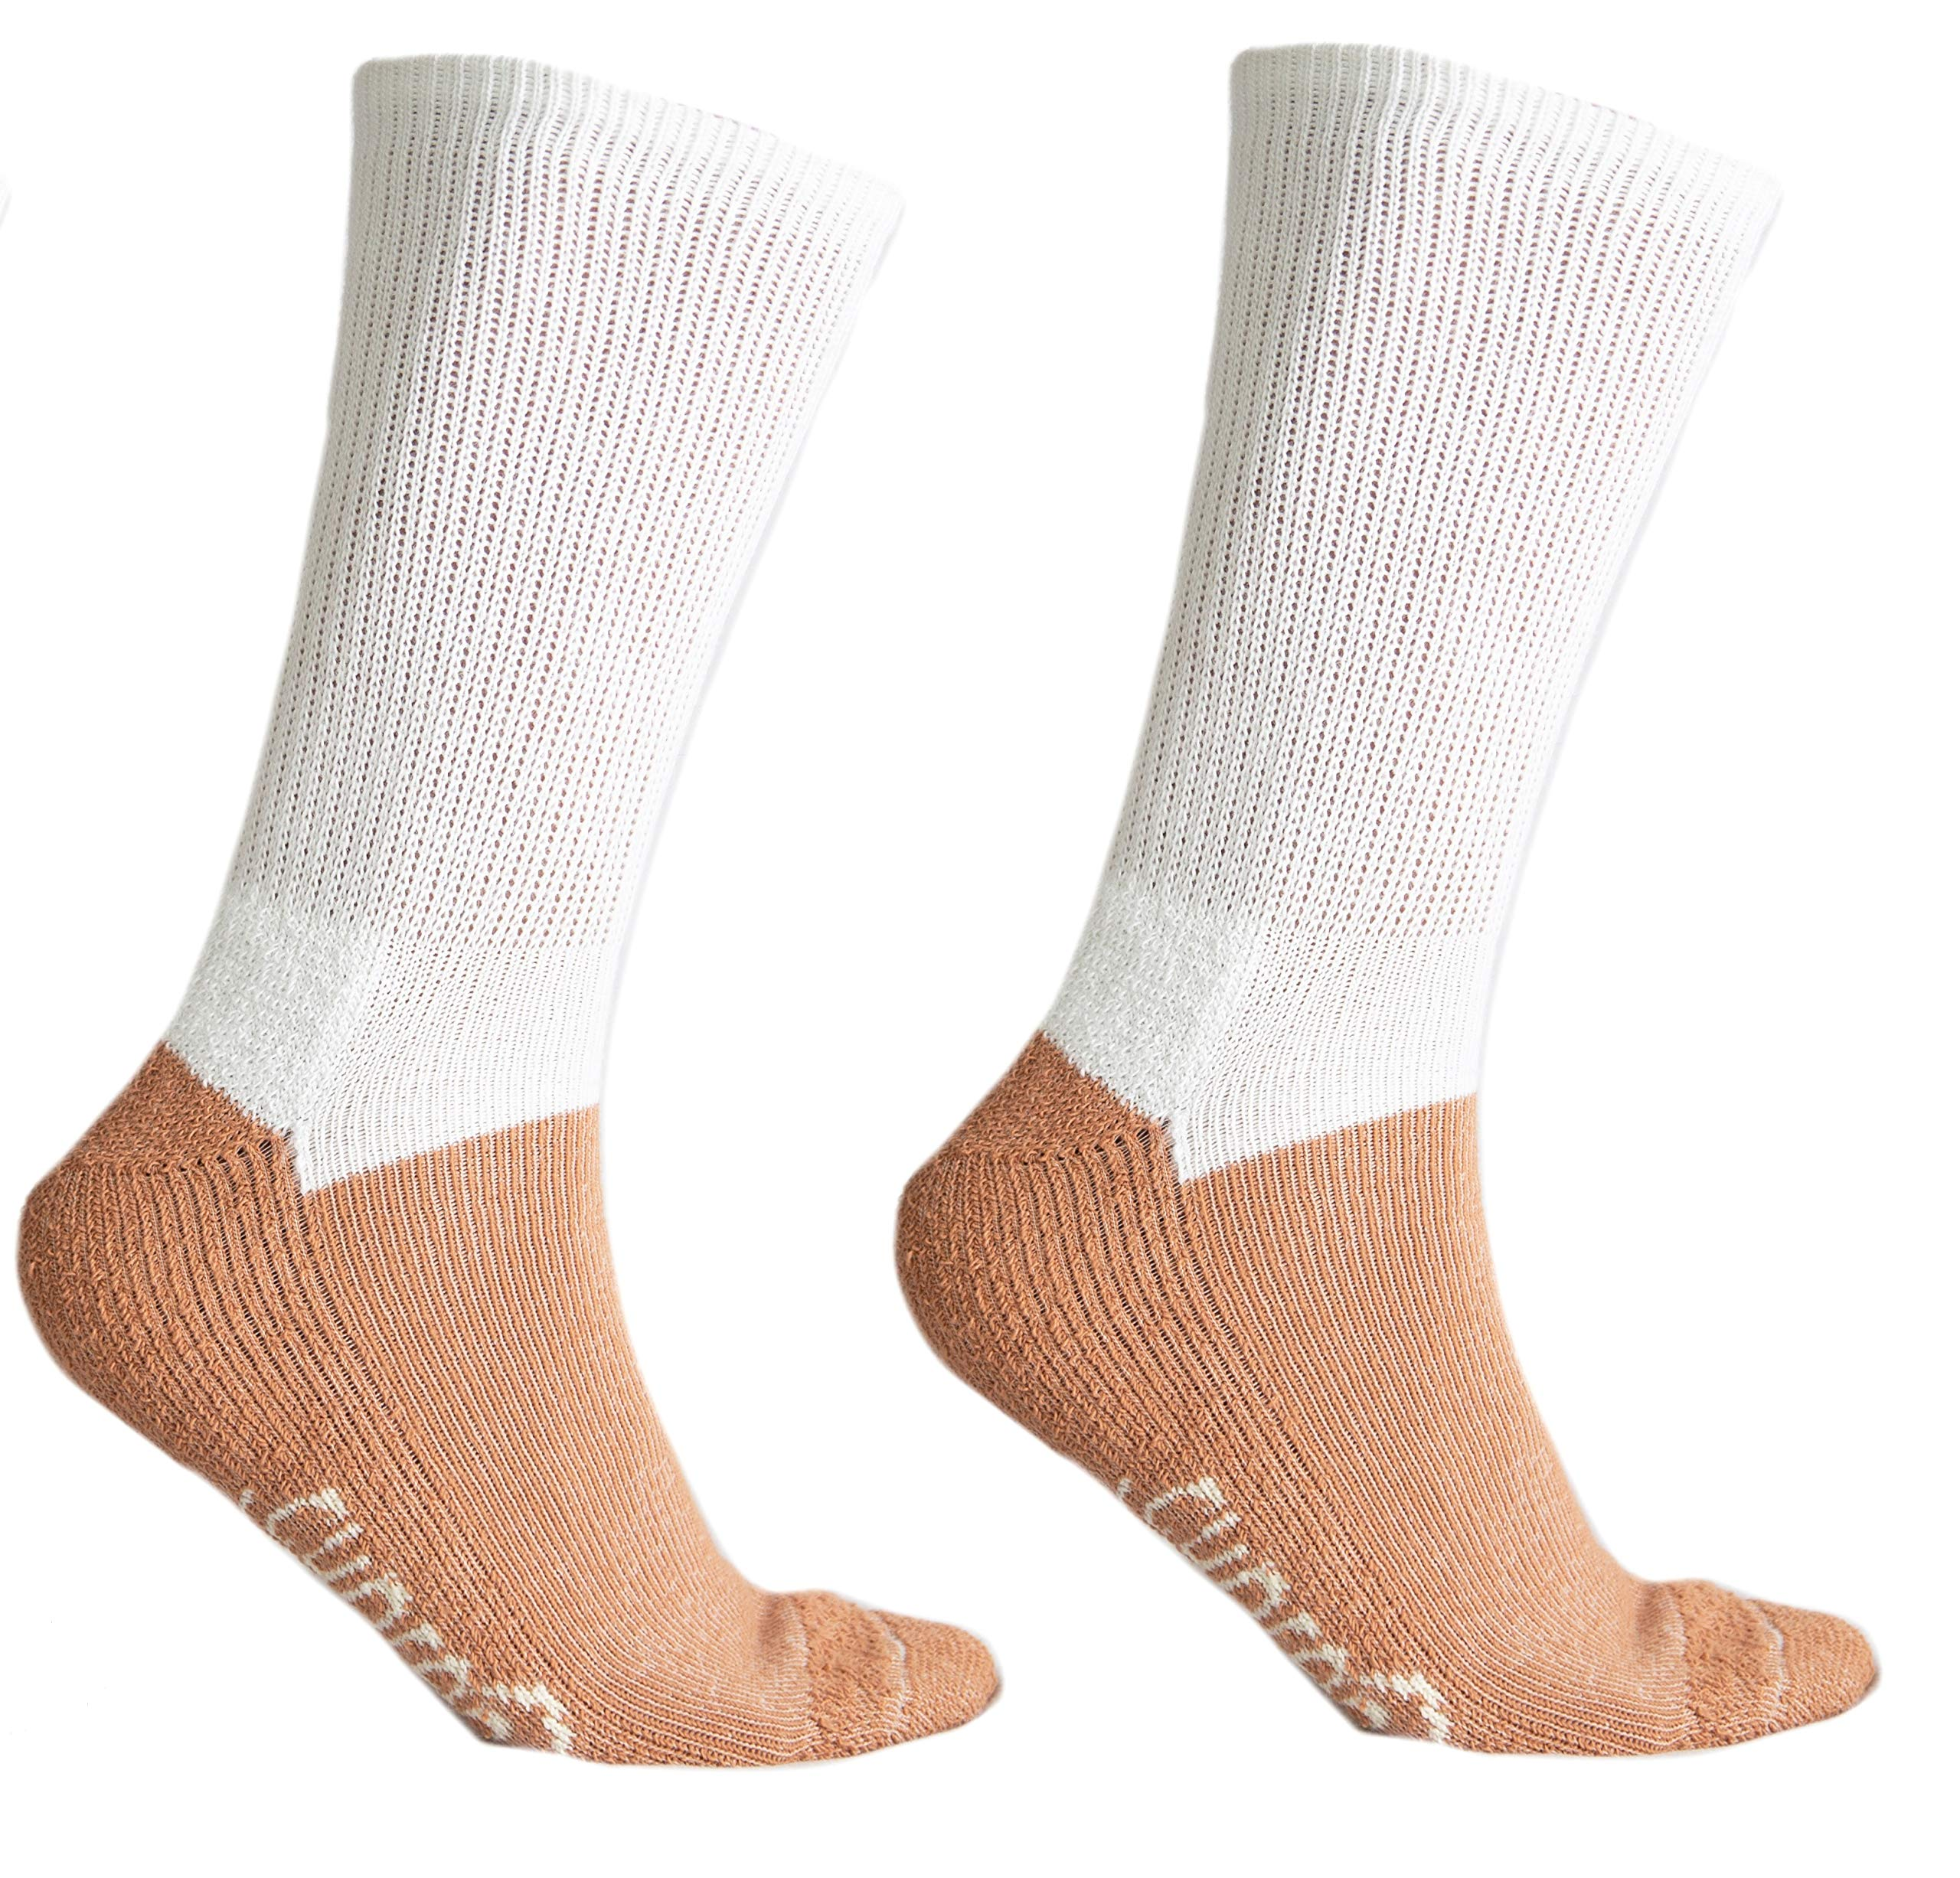 Glucology™ Diabetic Copper Infused Cupron Yarn Crew Socks | Non Binding Loose Fit | 2 Pairs White | Men 9-12 / Women 10-11.5